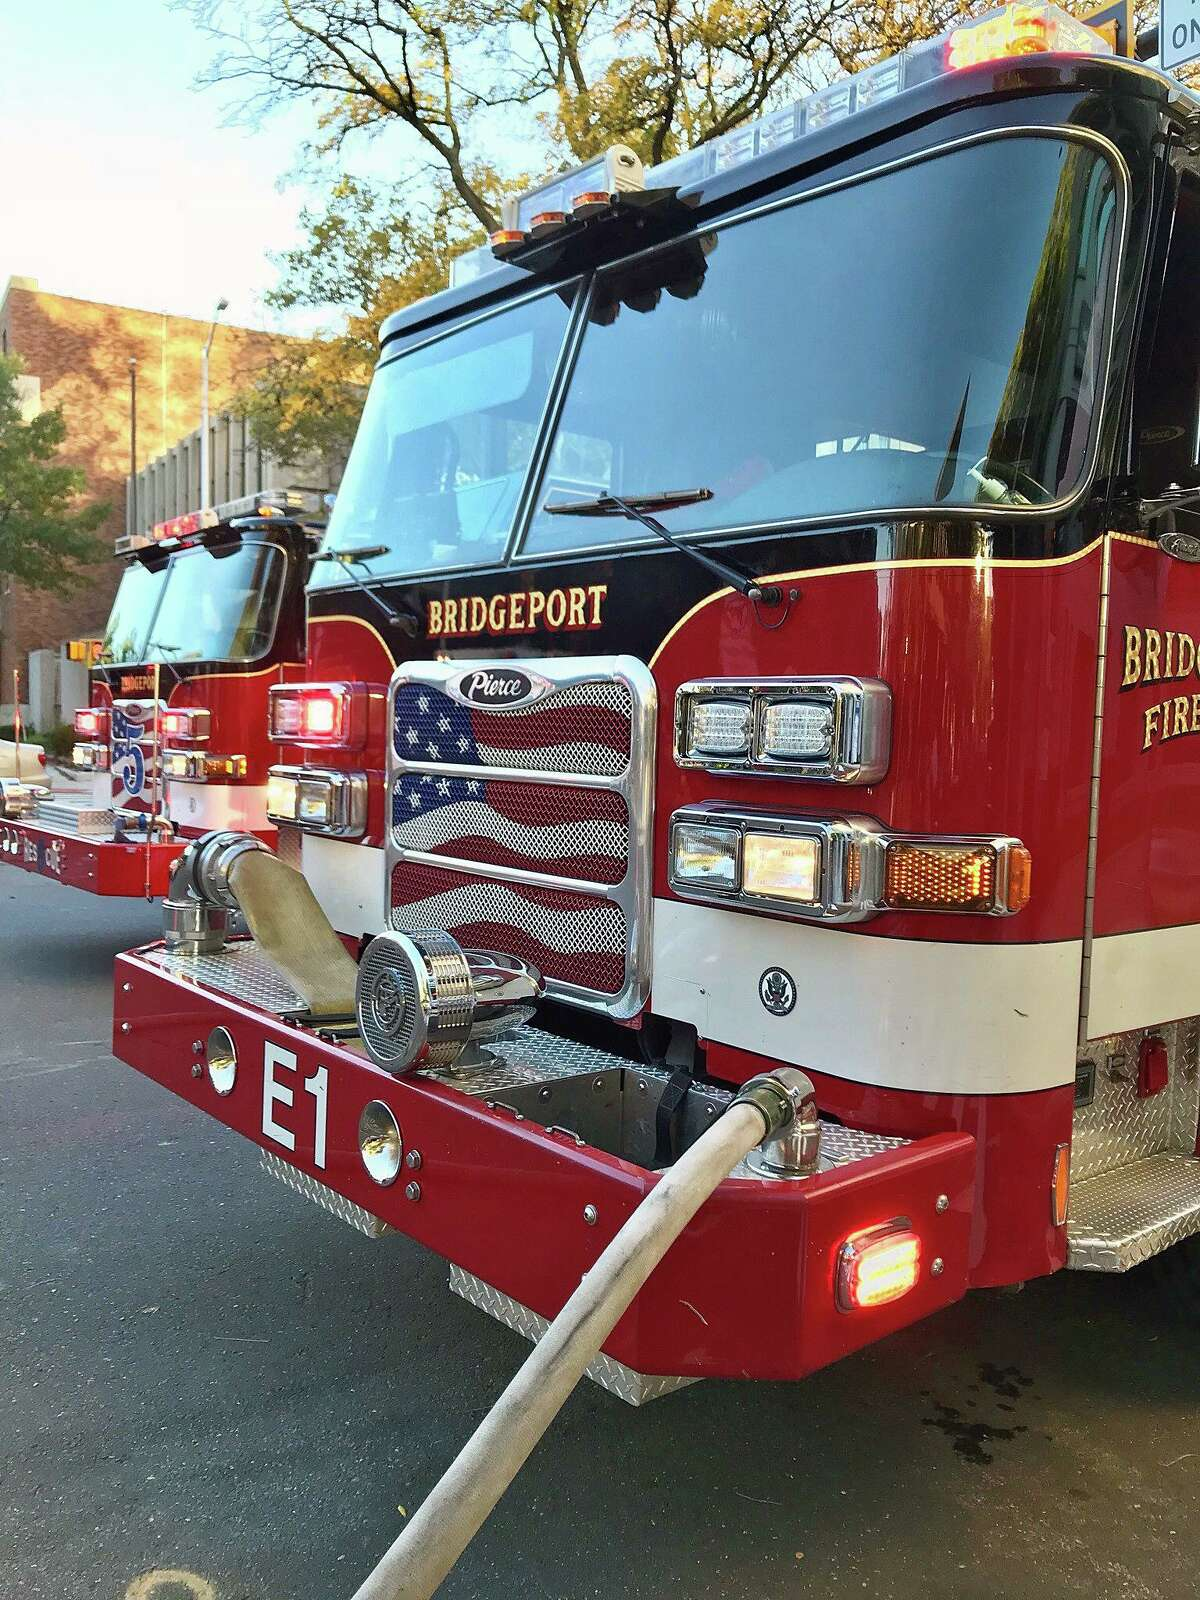 A transformer exploded in the area of Main Street and Old Town Road in Bridgeport, Conn., on Tuesday, Oct. 5, 2021, according to officials.